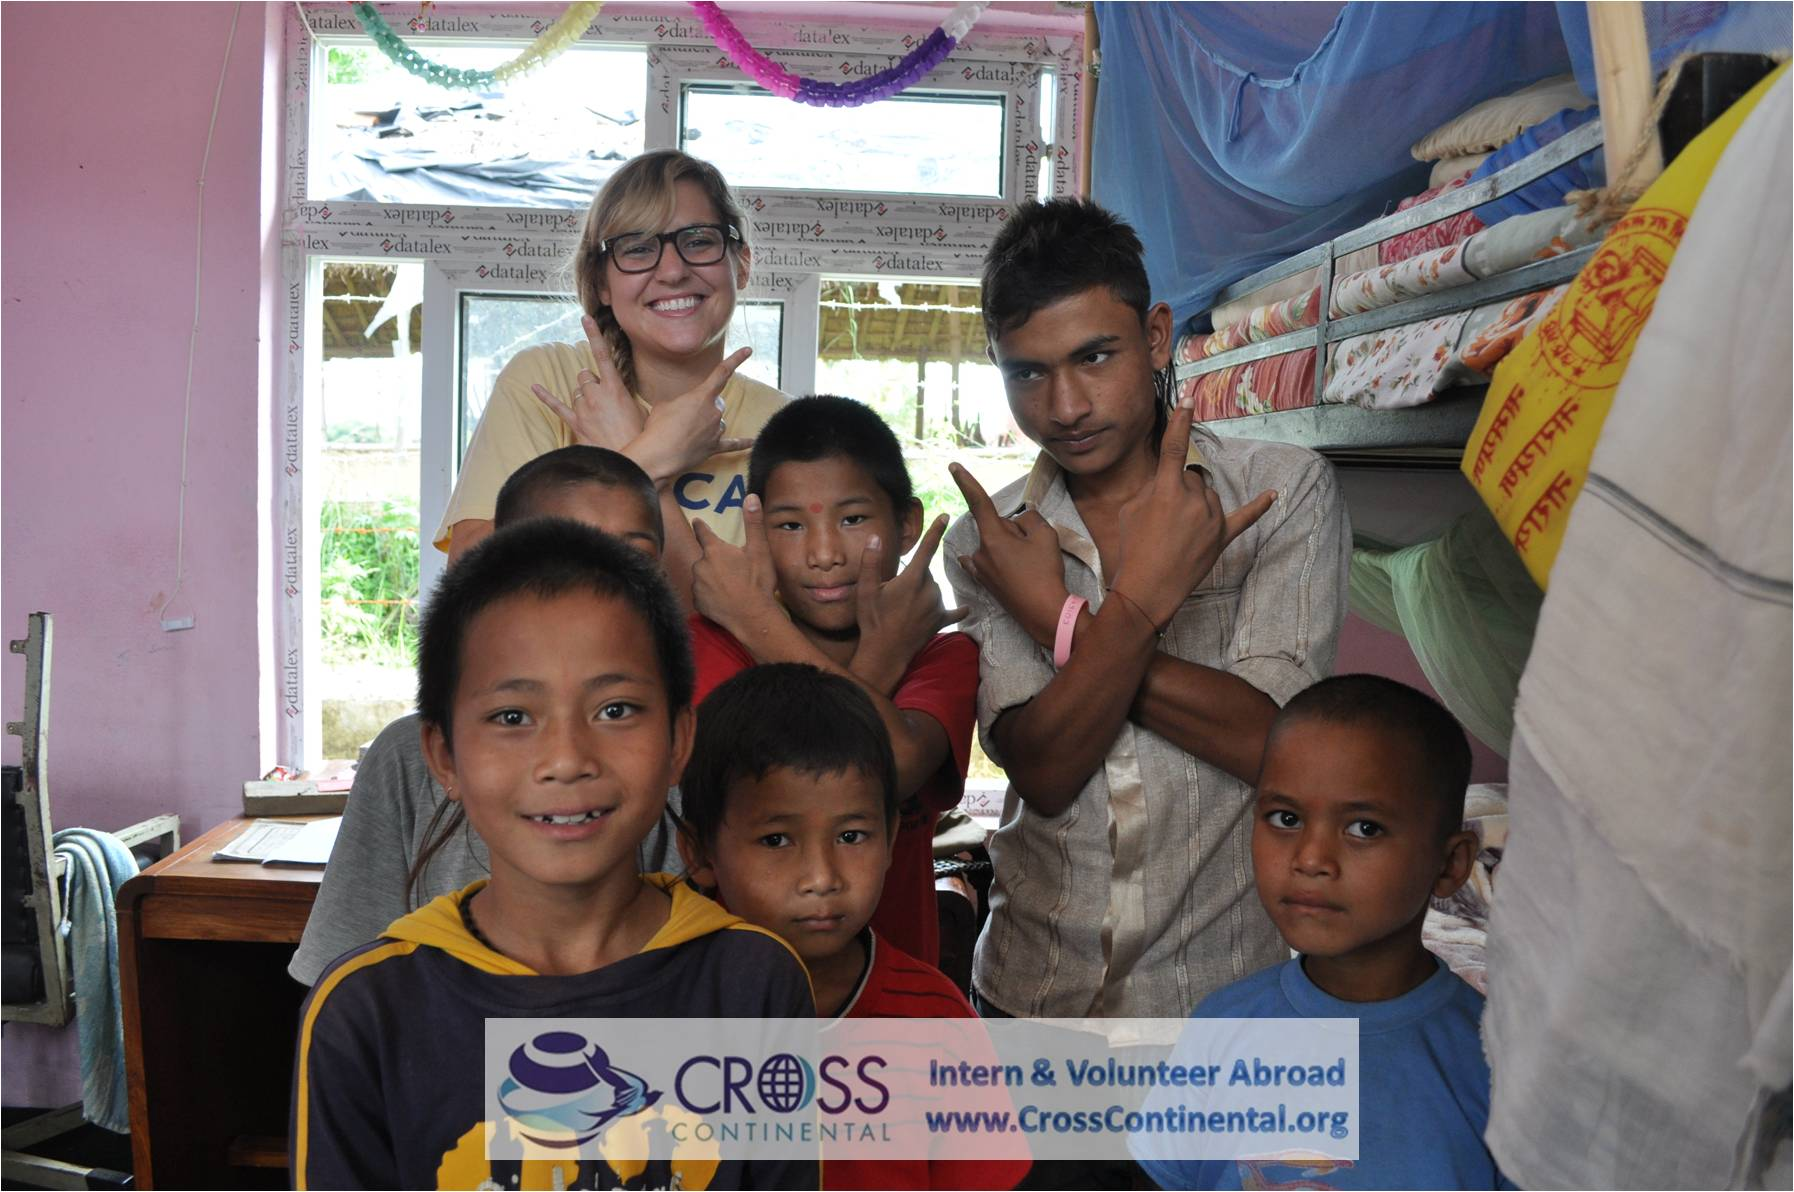 international-internships-and-volunteer-abroad-in-Asia-Nepal-intern-abroad-orphanage-work